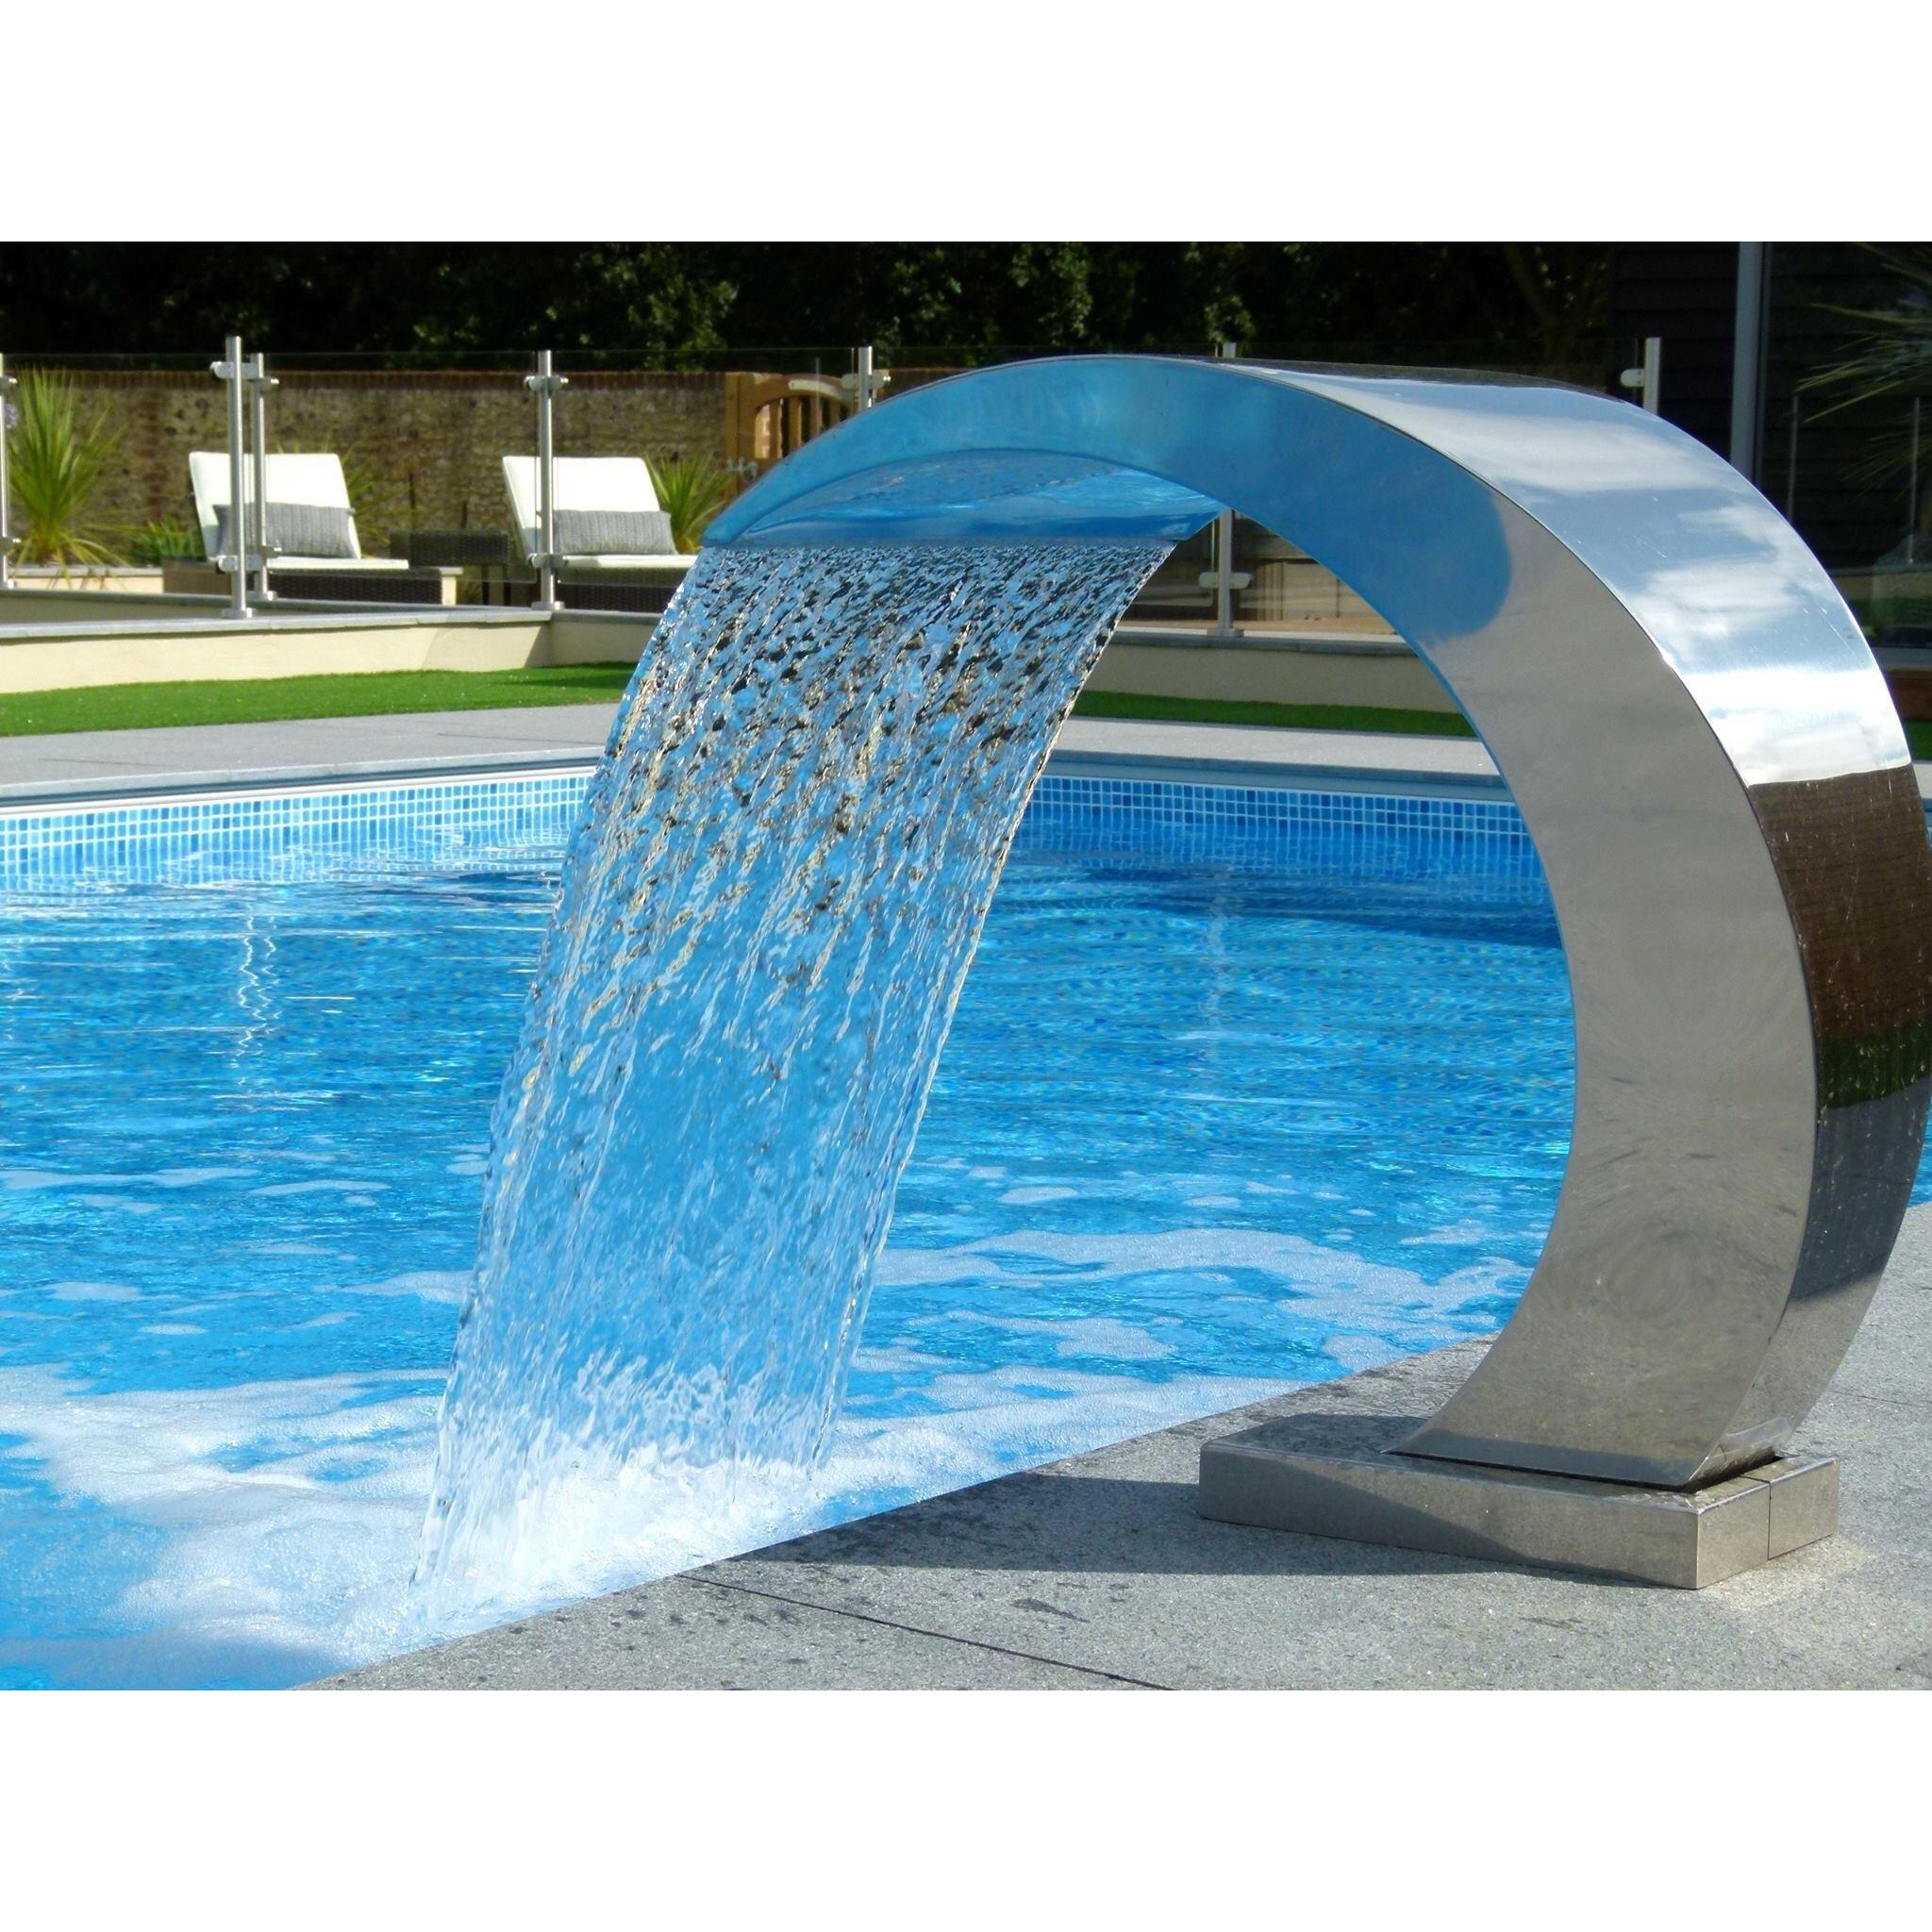 Letts swimming pools ltd semer opening times semer for Outdoor pools open